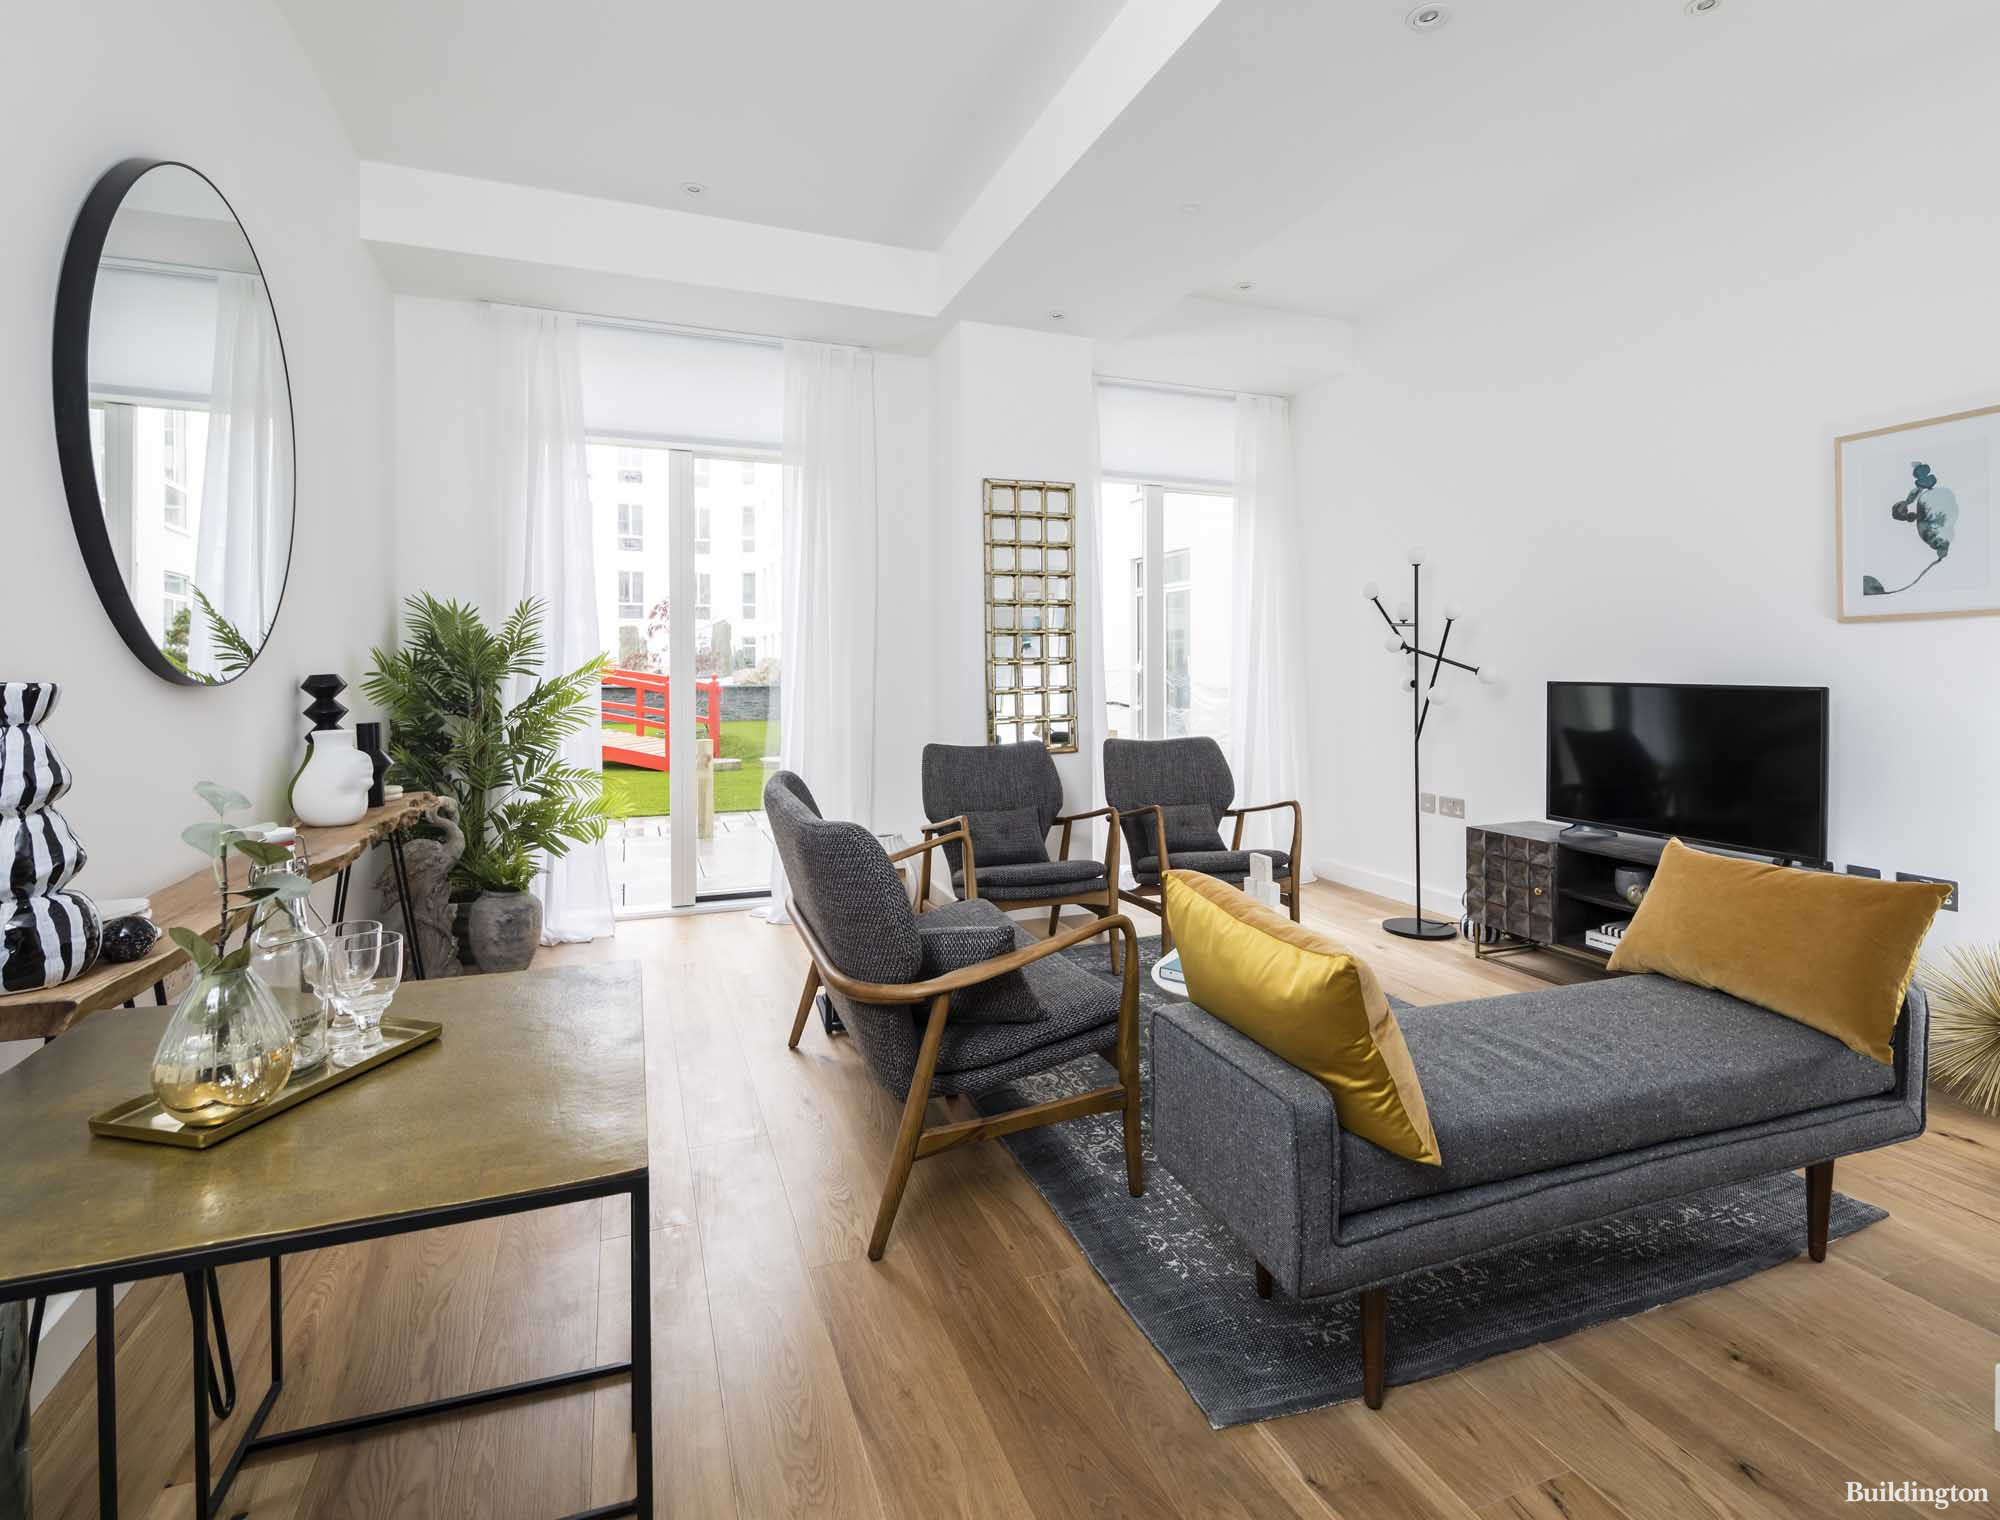 Living room area in the show apartment at Islington Square development in 2021.